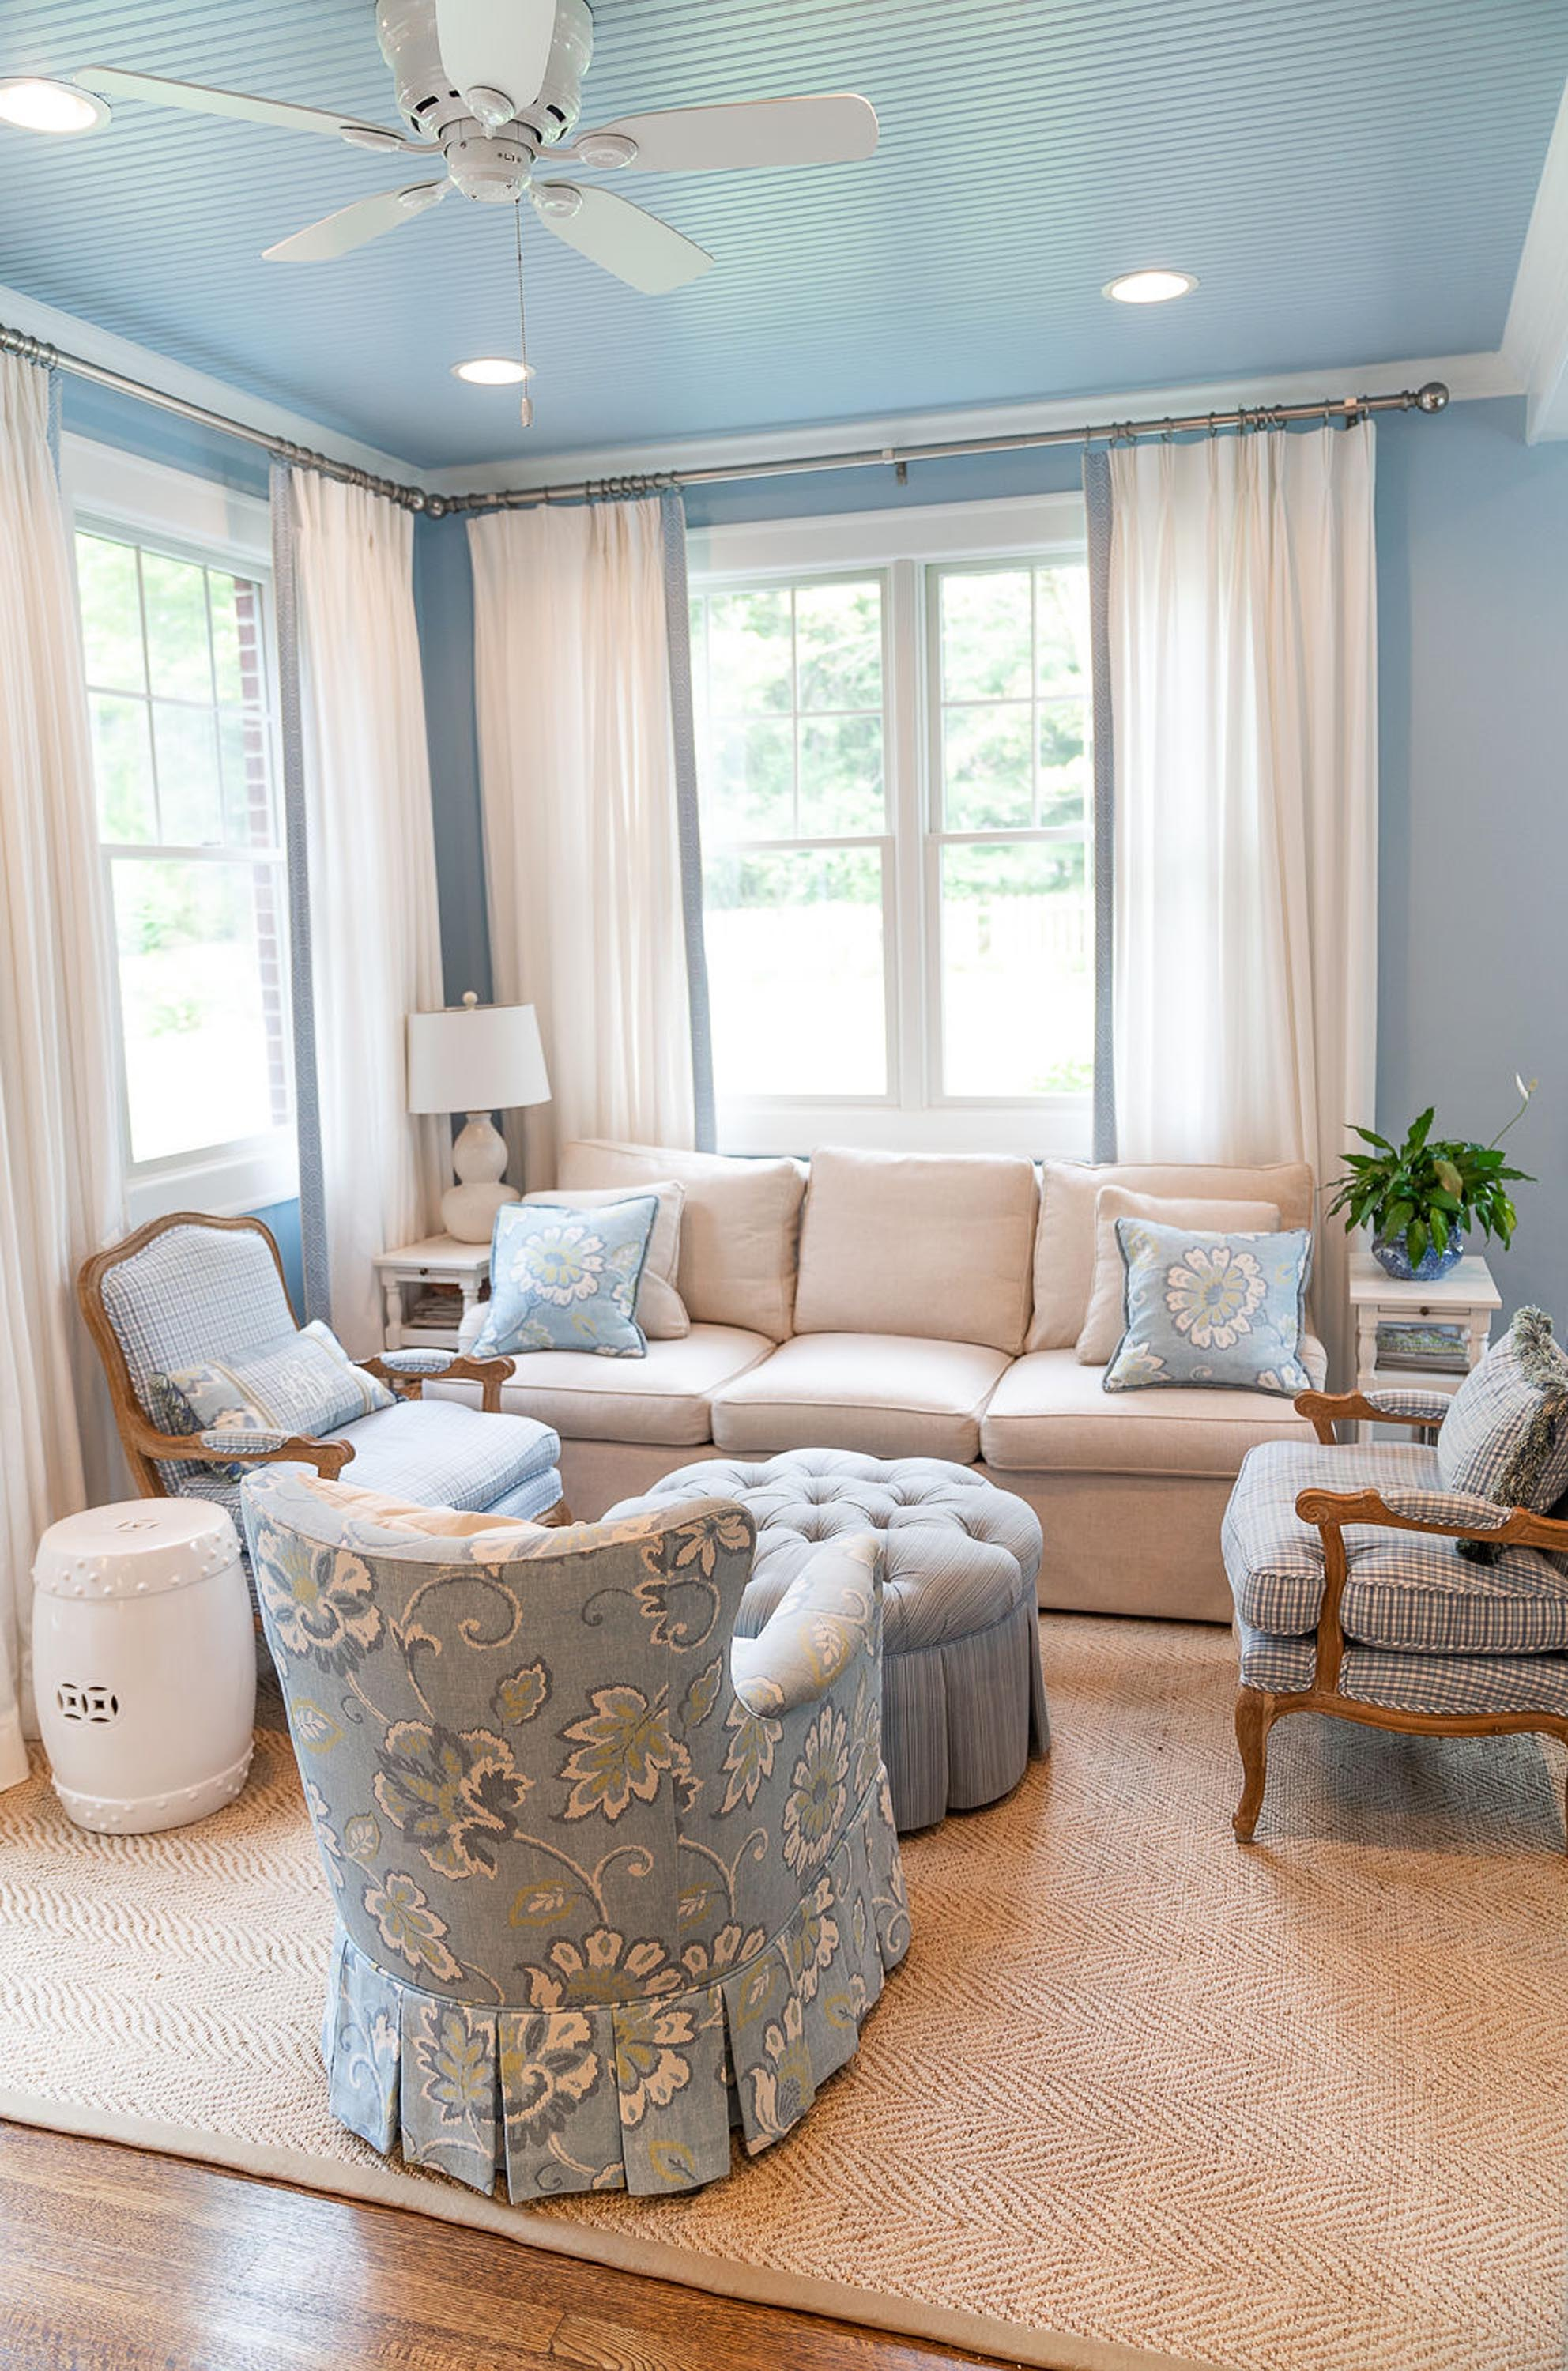 Blue painted living room with sofa, lamp and ceiling fan